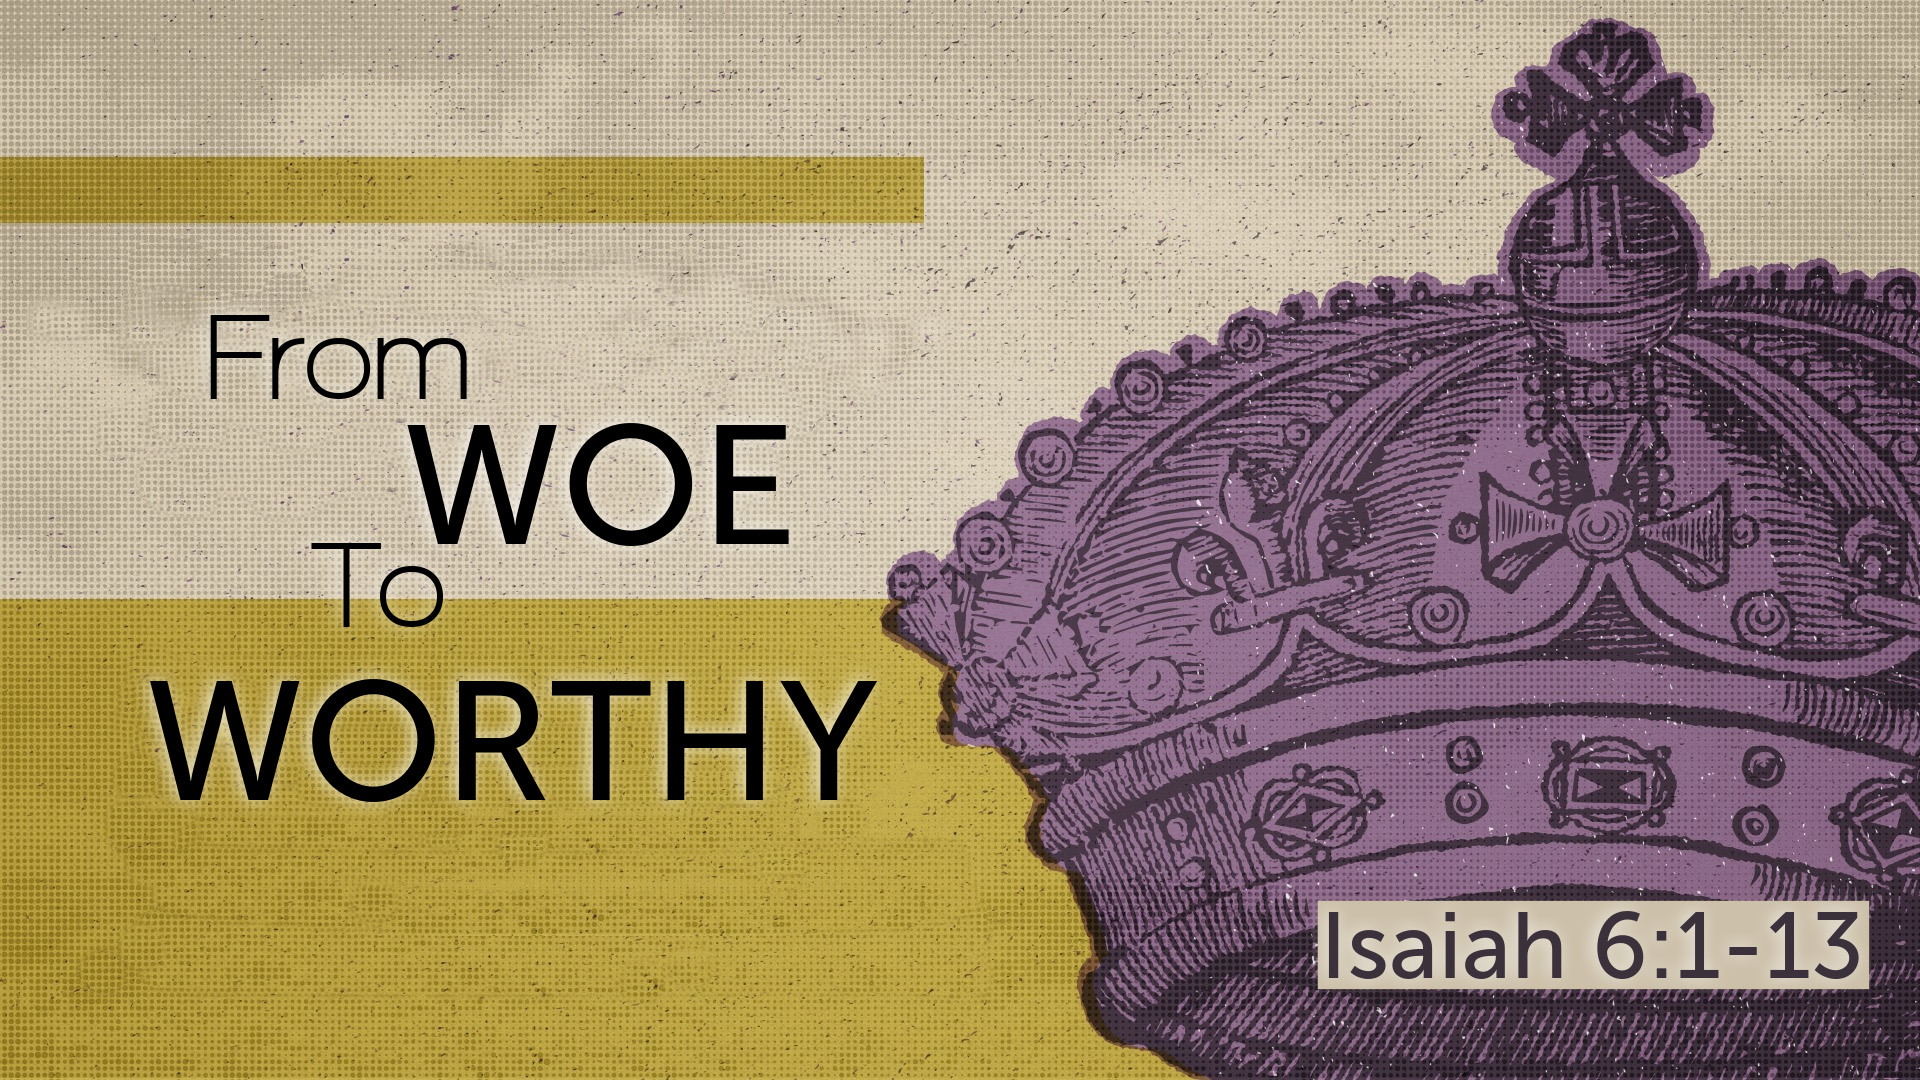 Image for the sermon From Woe to Worthy